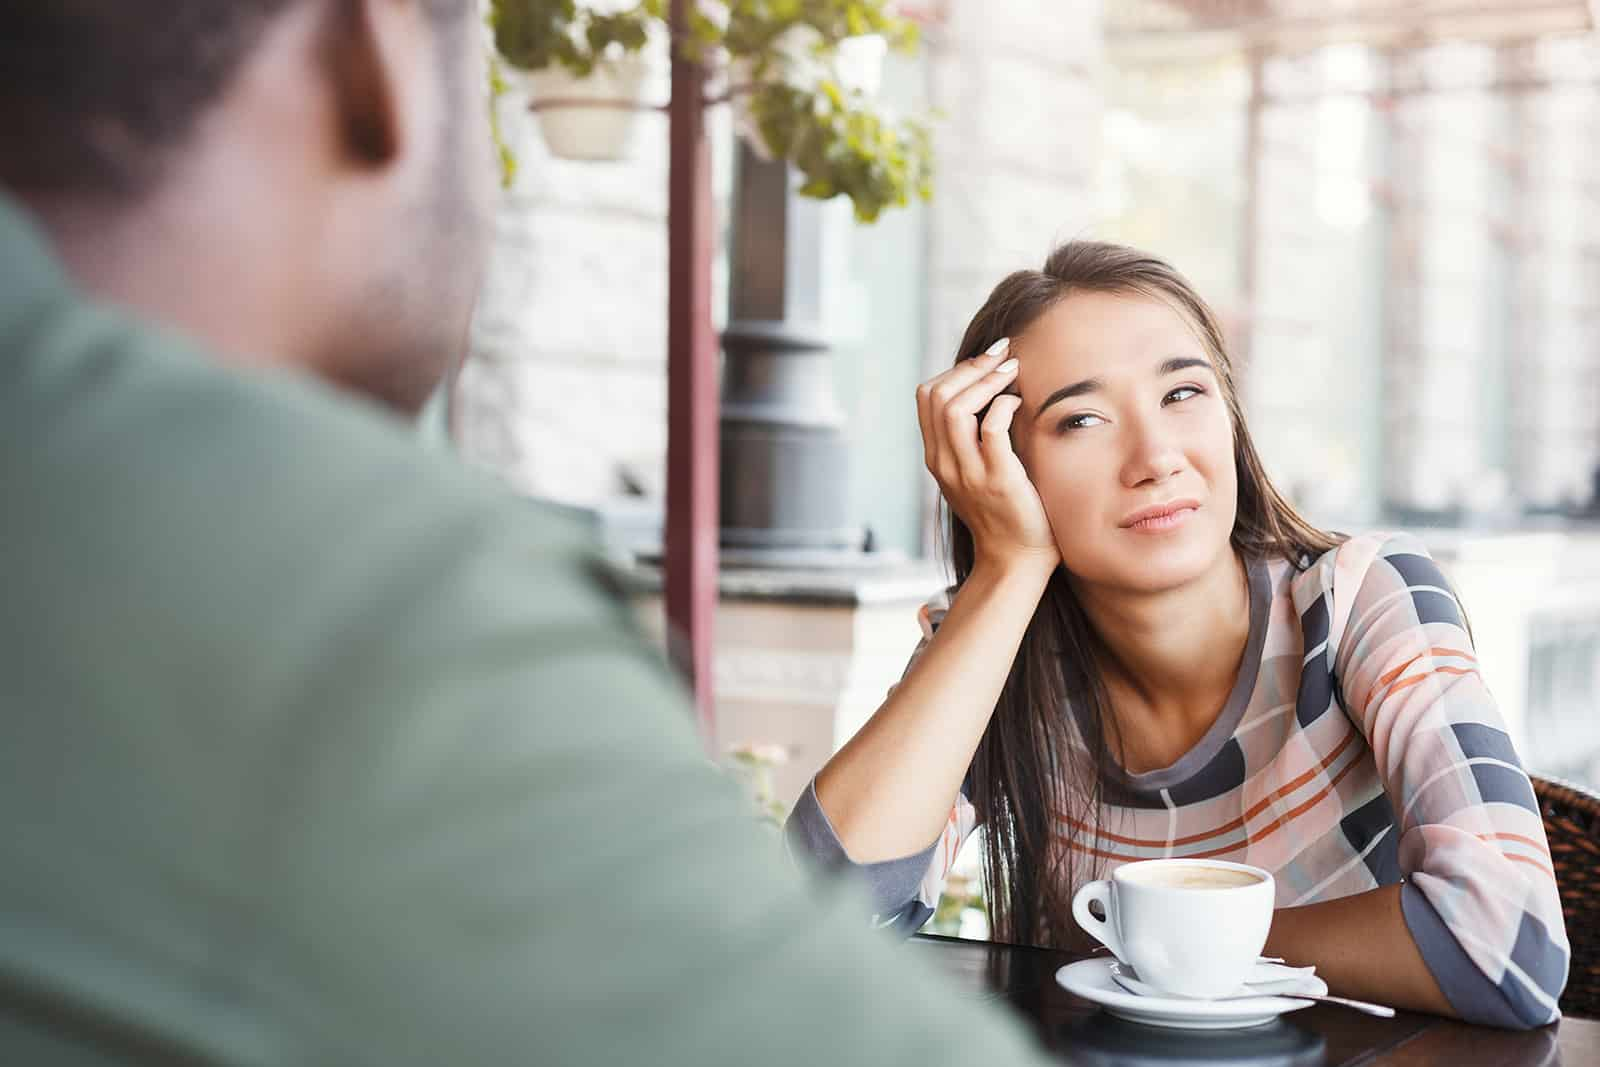 confused woman looking at man sitting with her in a cafe on a date